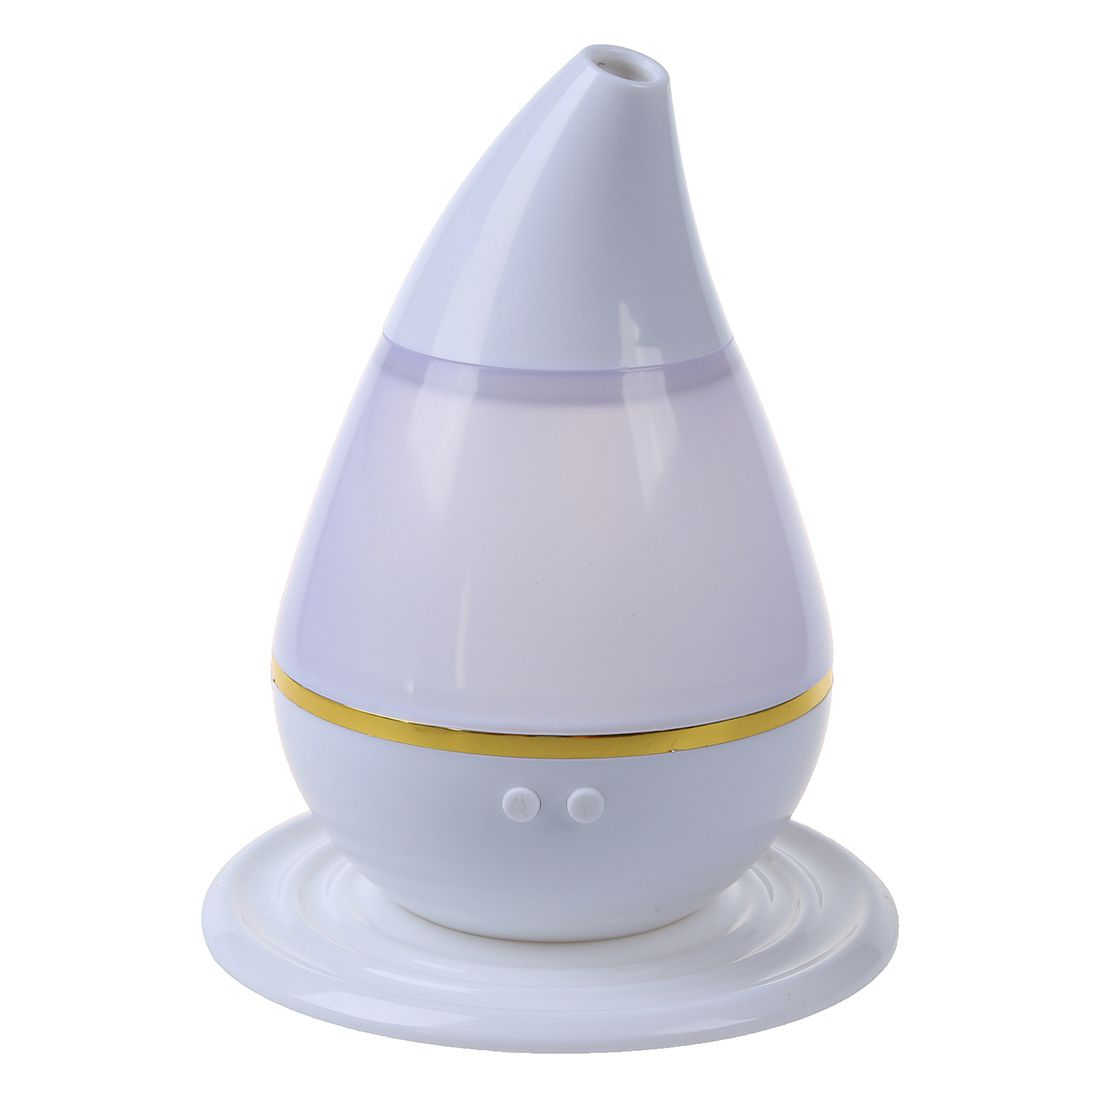 LED USB Ultrasonic Humidifier Diffuser Rainbow Of Flavours 250ML